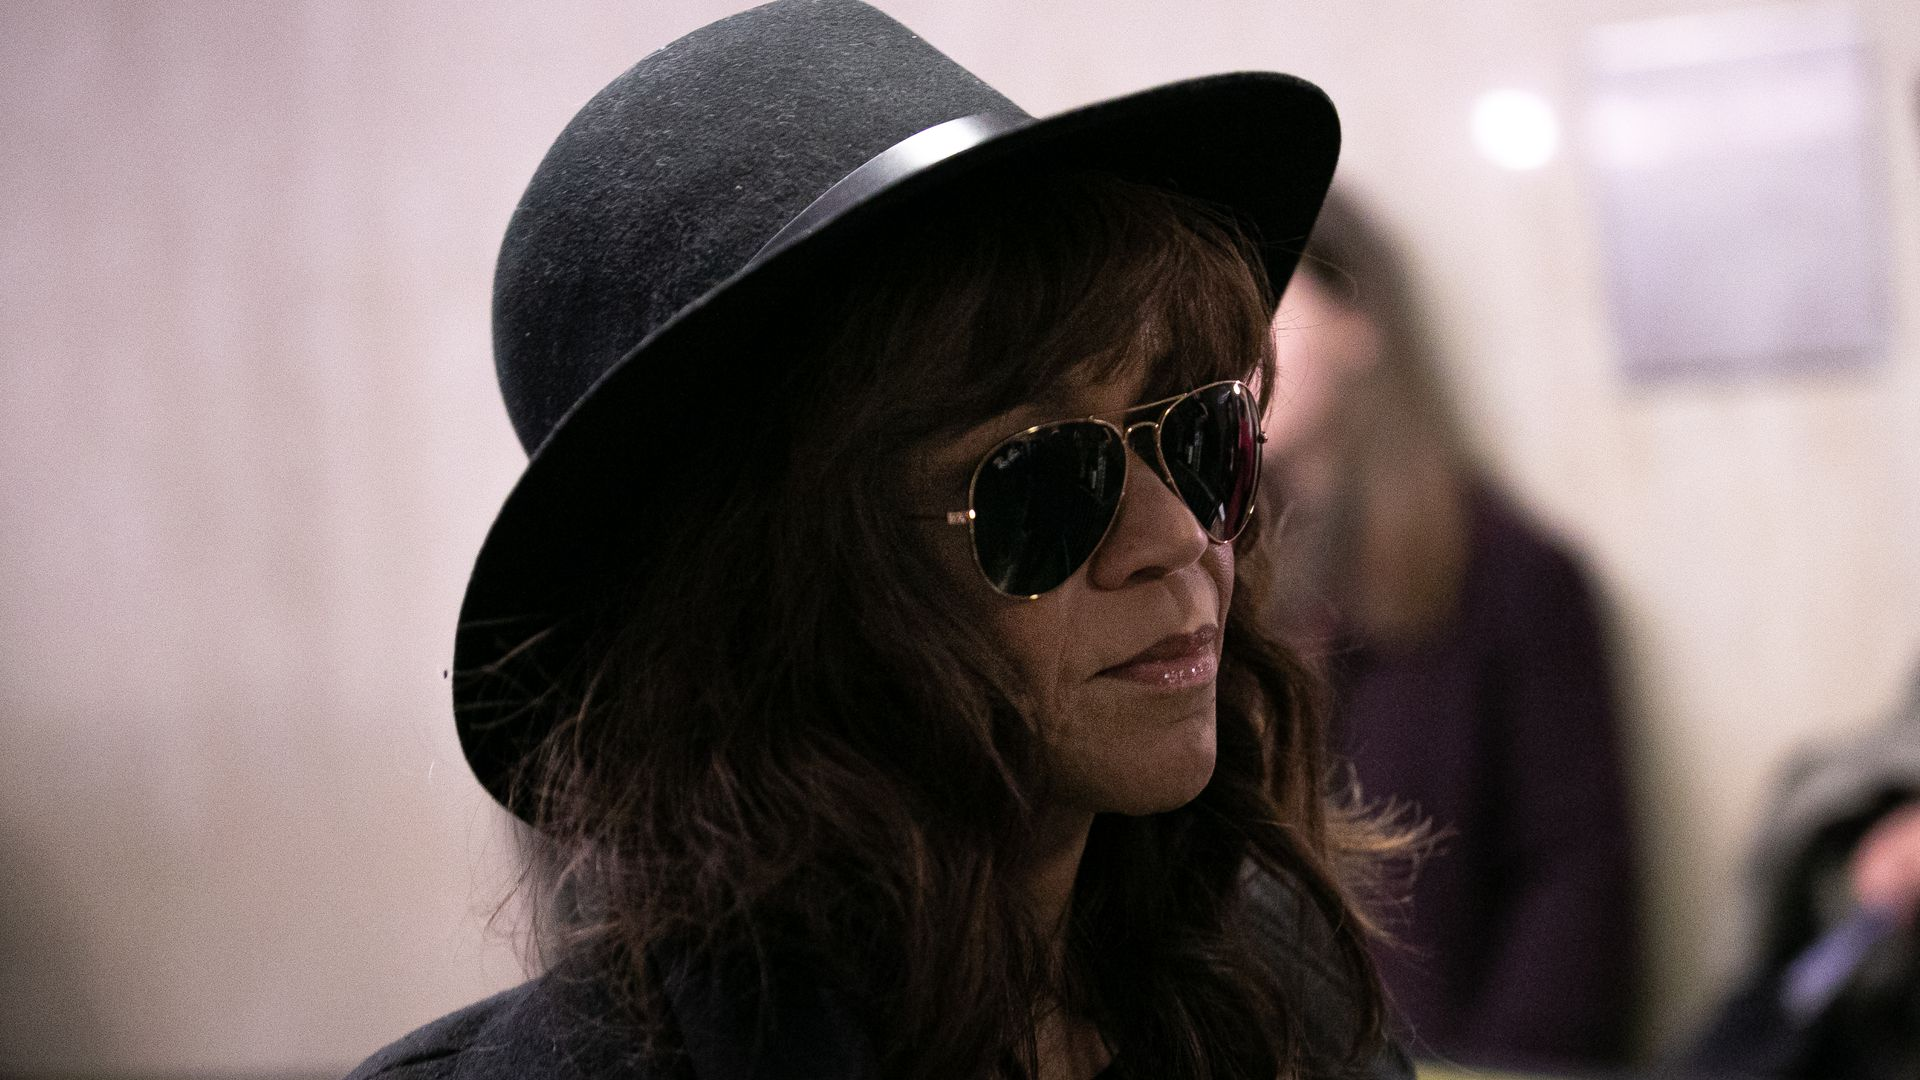 Rosie Perez arrives at New York City Criminal Court for the continuation of Harvey Weinstein's trial on January 24, 2020